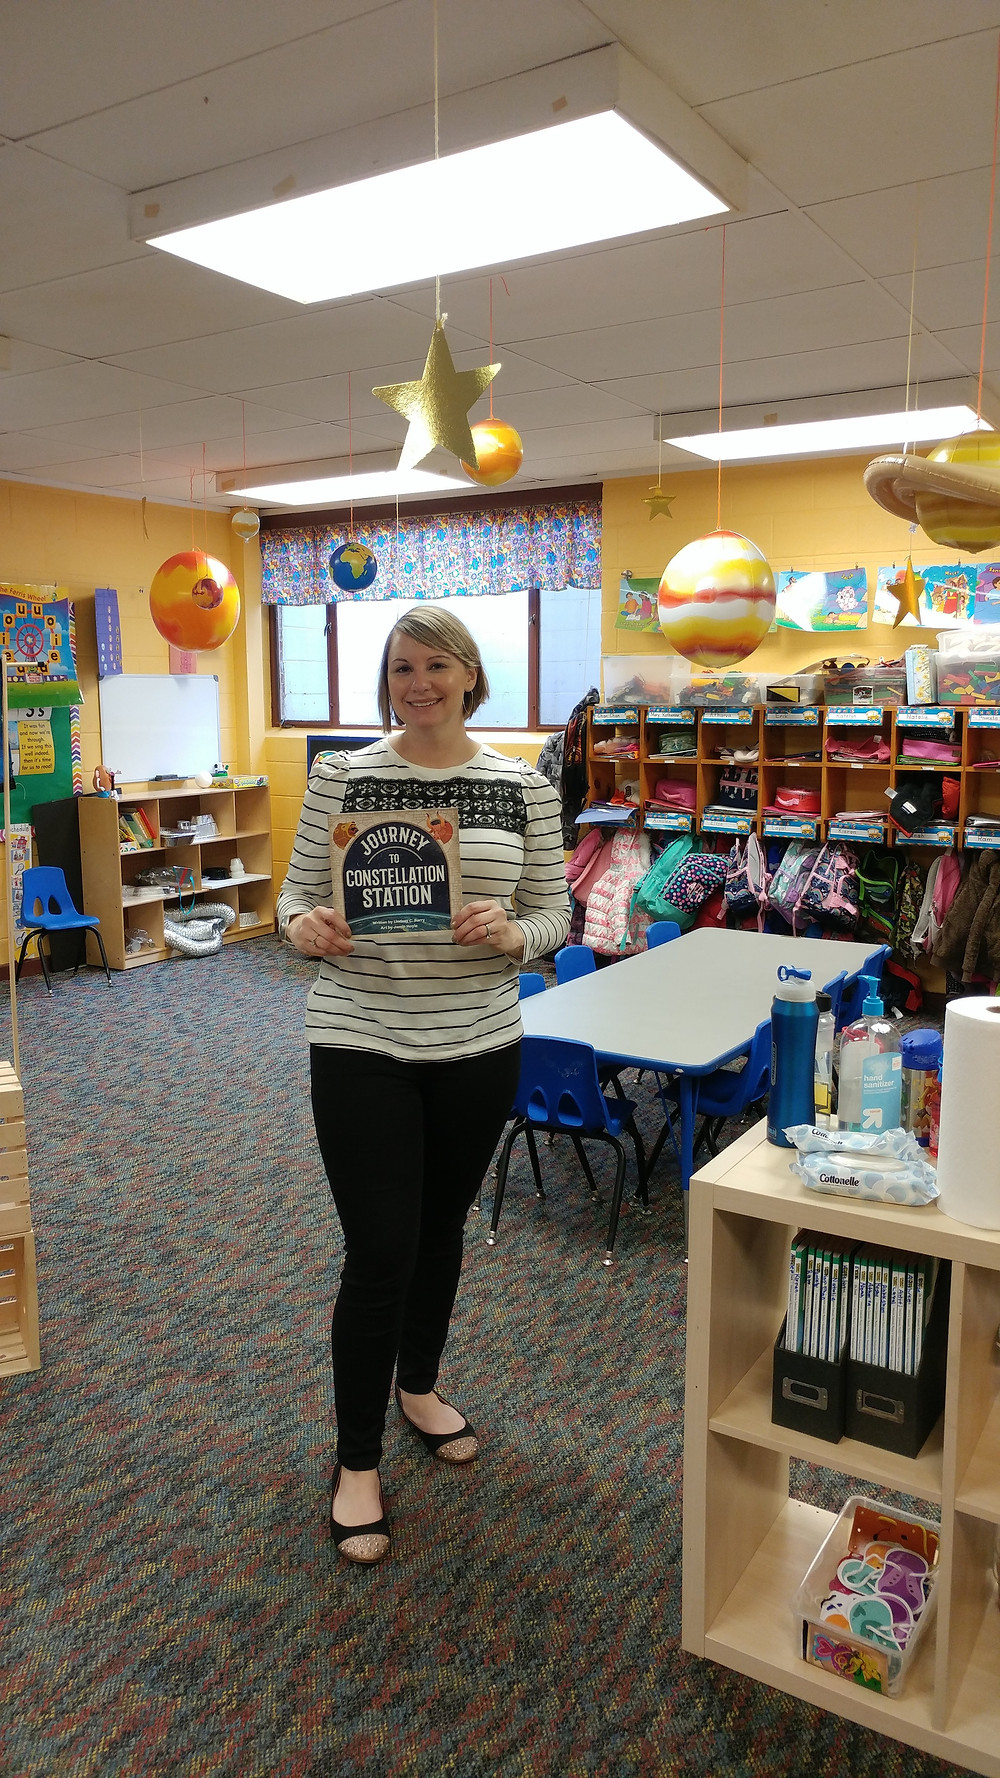 Children's Author Lindsay Barry Waiting for the kids in a classroom